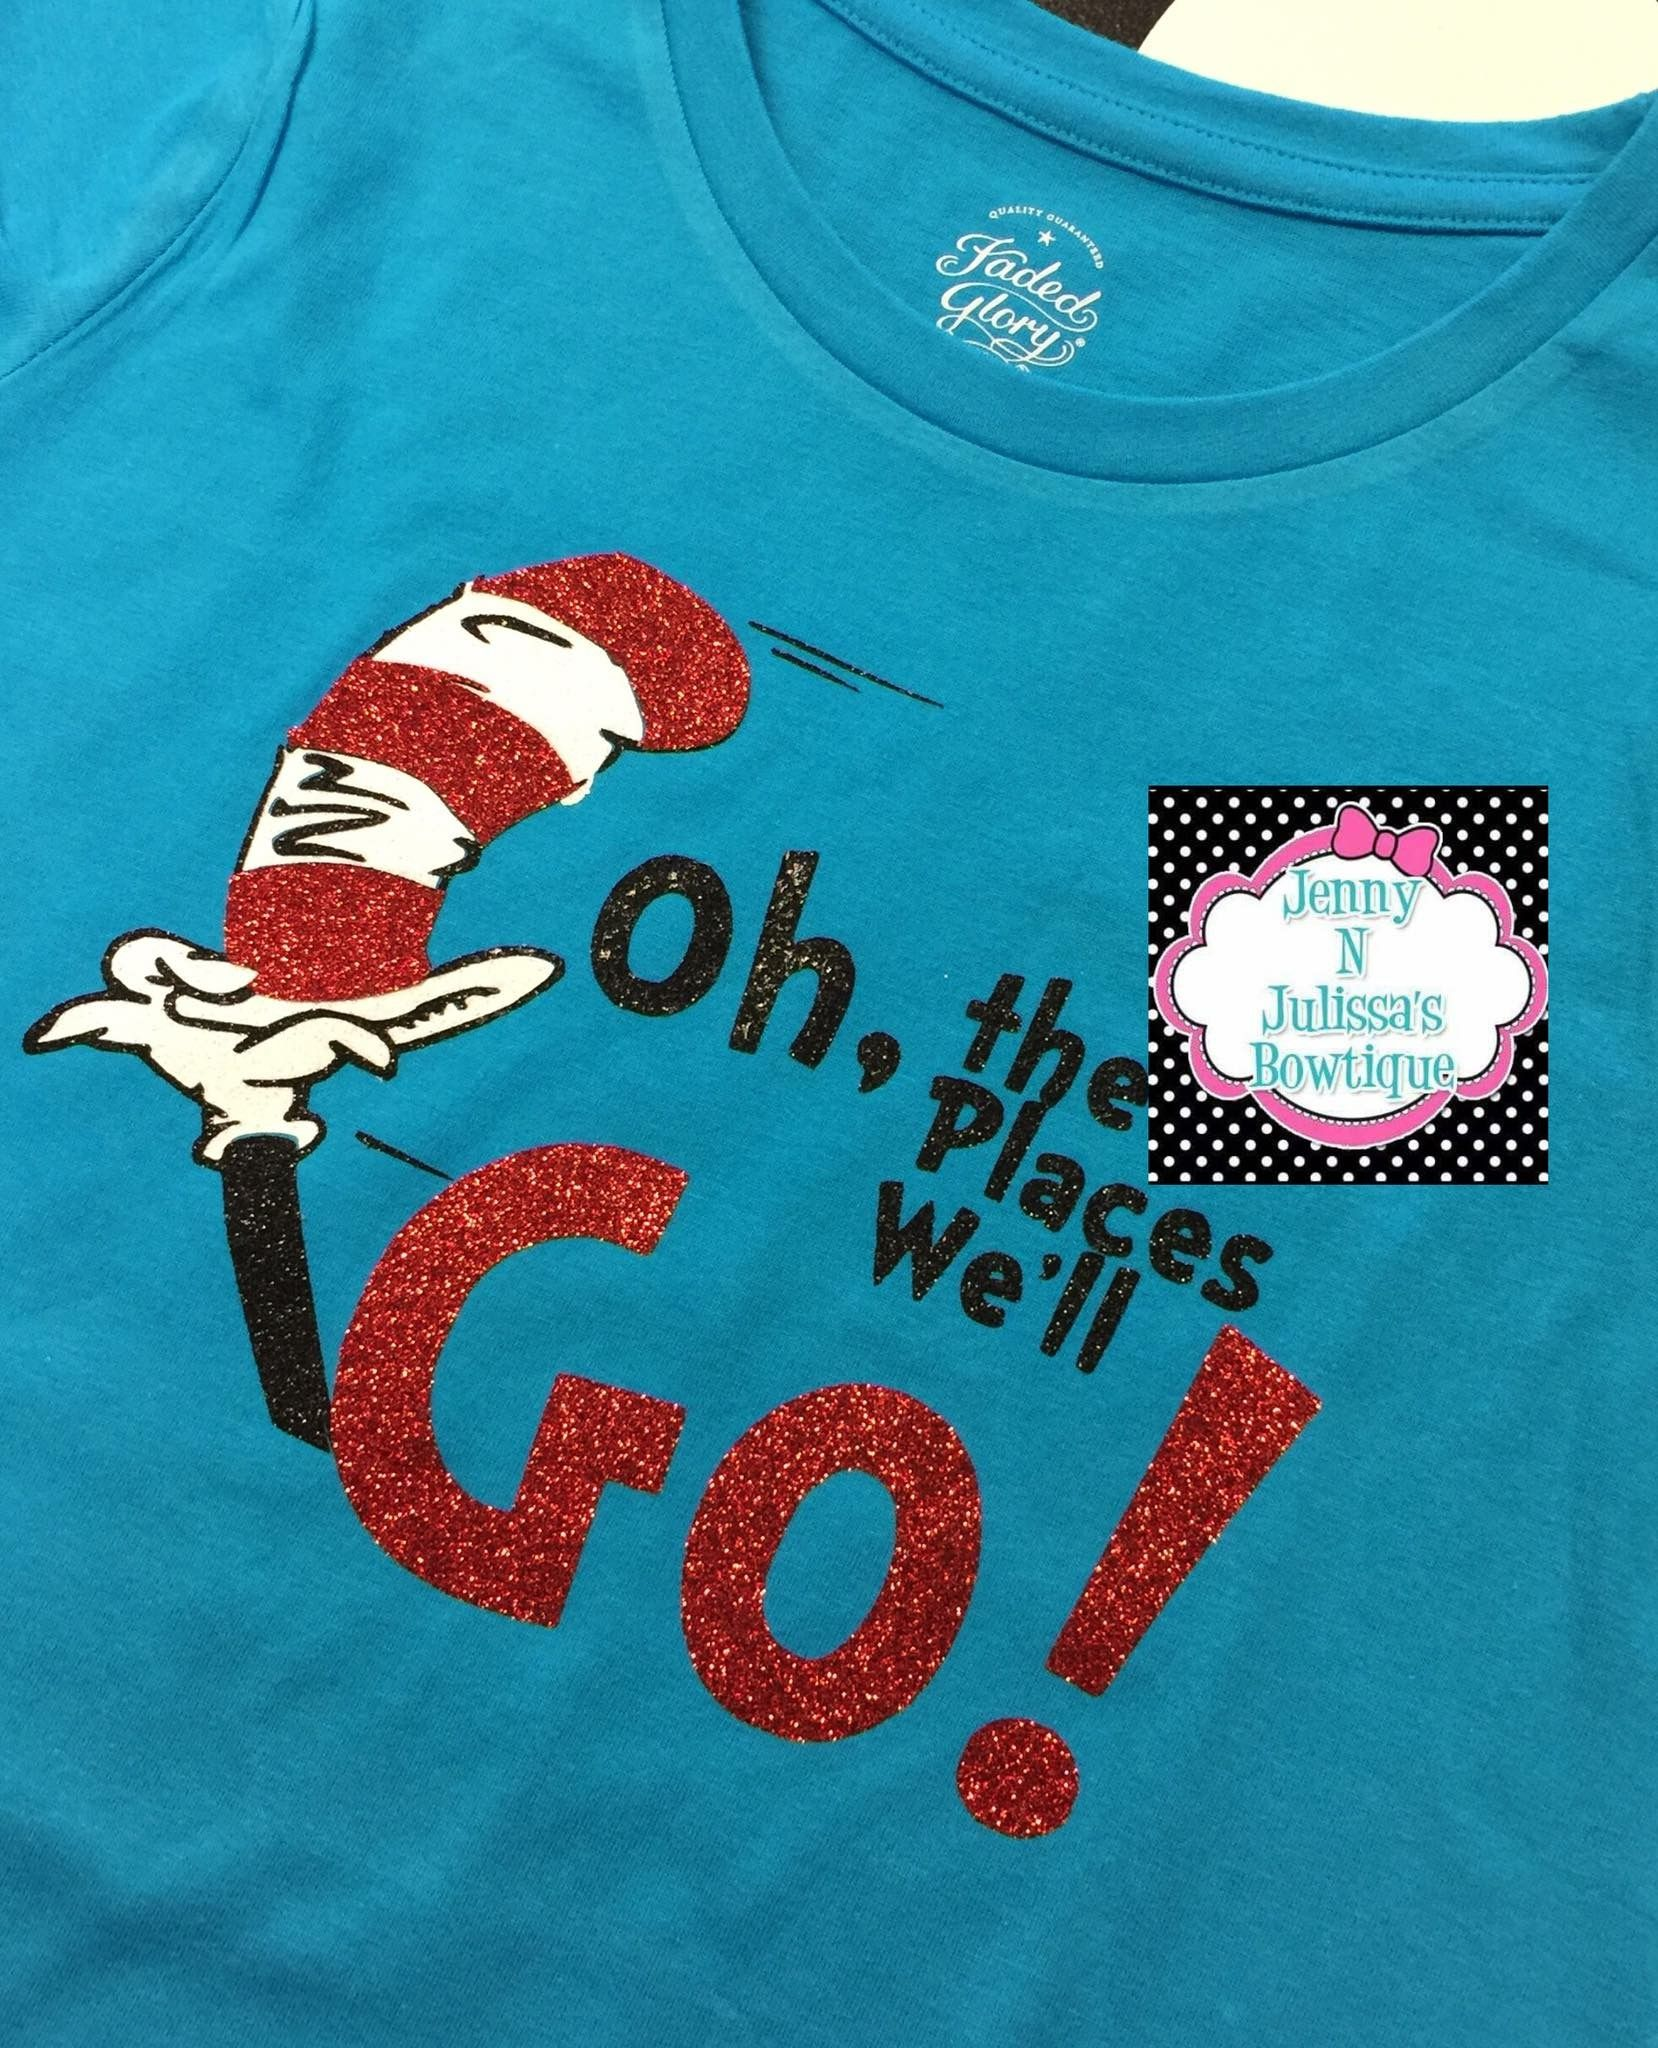 f8714a9a Oh the places you'll go! -Dr Seuss T-shirt! Love that it has so much ...